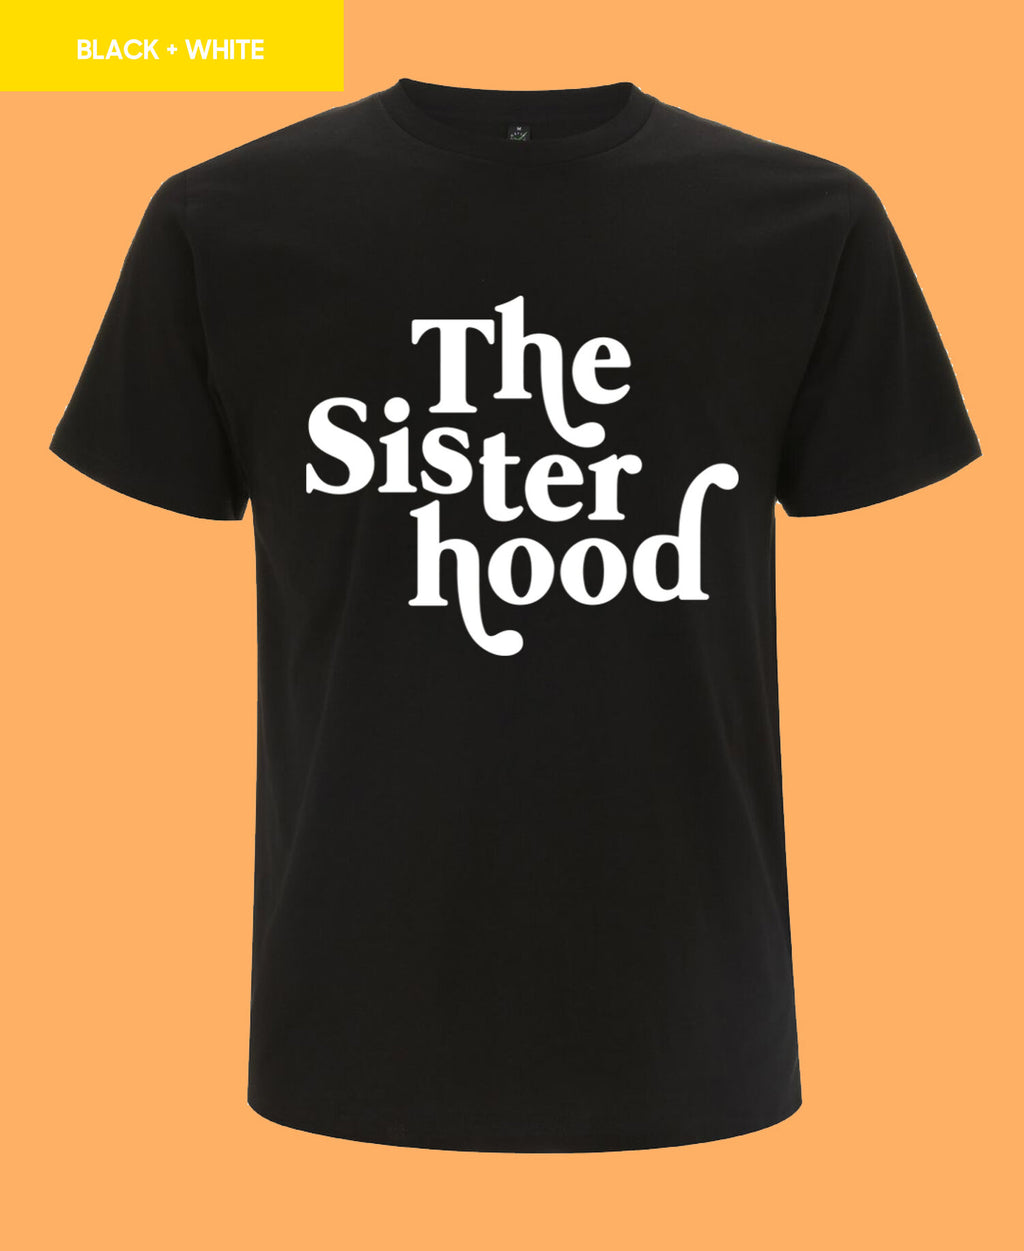 The Sisterhood Tee